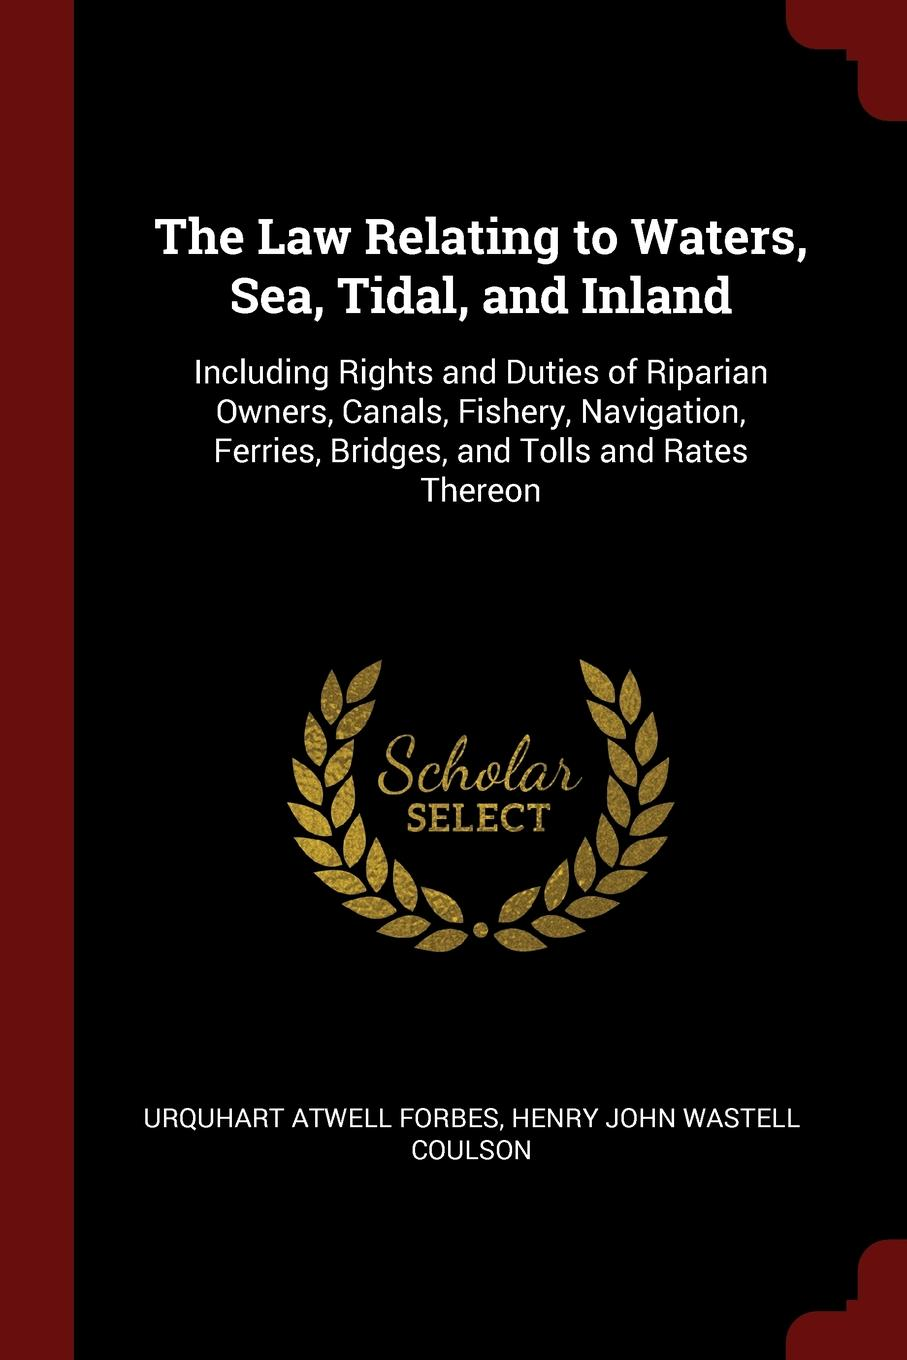 Urquhart Atwell Forbes, Henry John Wastell Coulson The Law Relating to Waters, Sea, Tidal, and Inland. Including Rights Duties of Riparian Owners, Canals, Fishery, Navigation, Ferries, Bridges, Tolls Rates Thereon